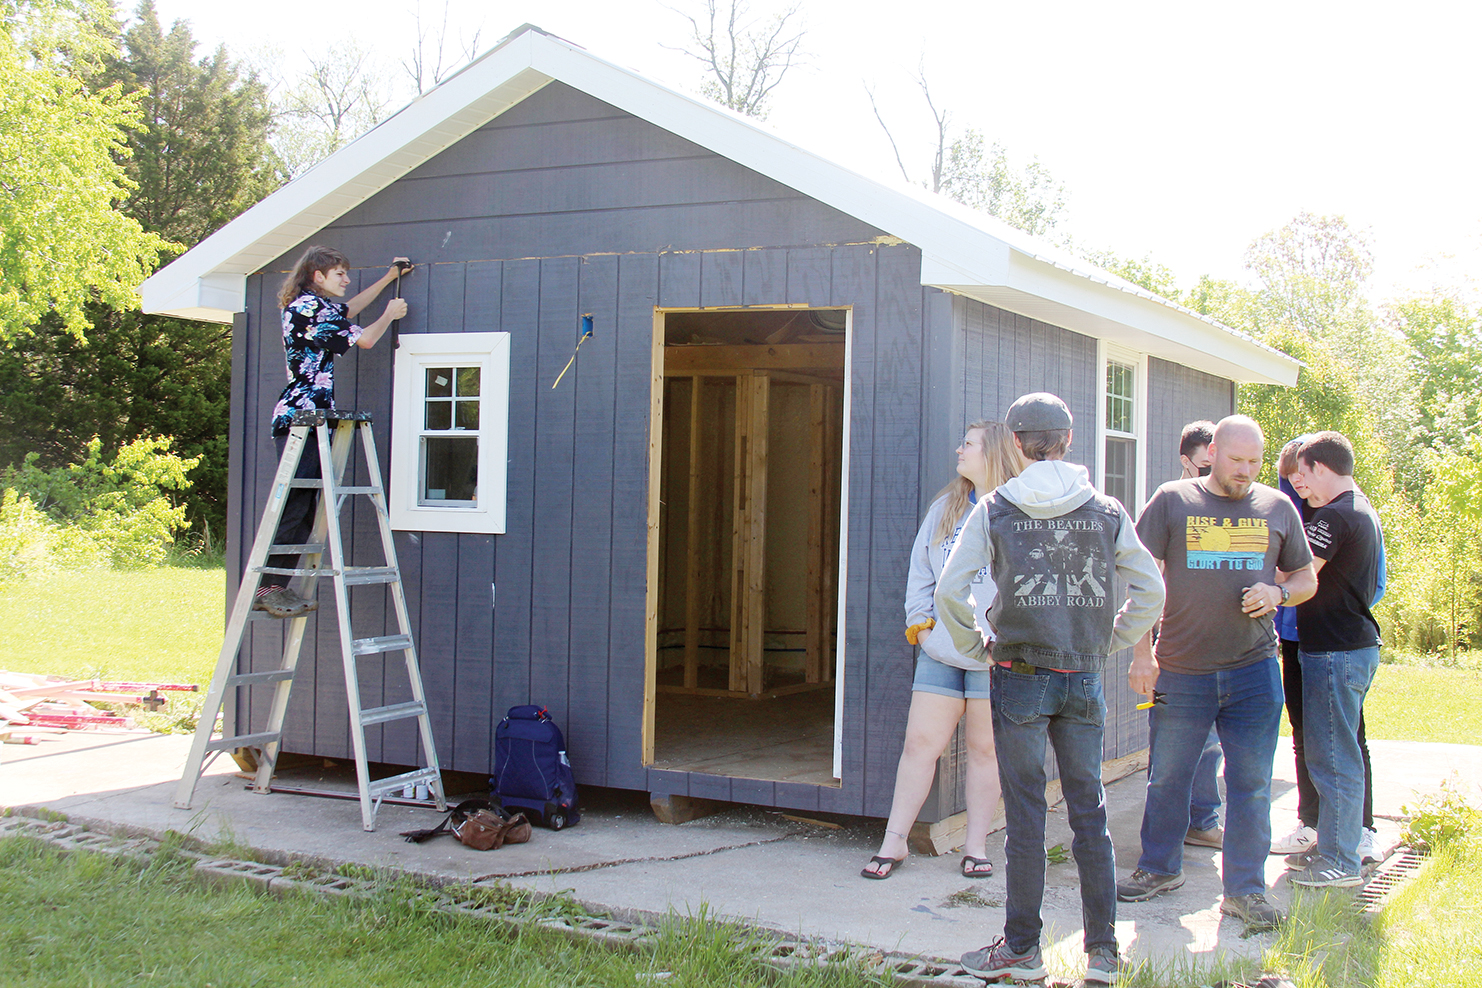 Home-school students build tiny home for veterans group